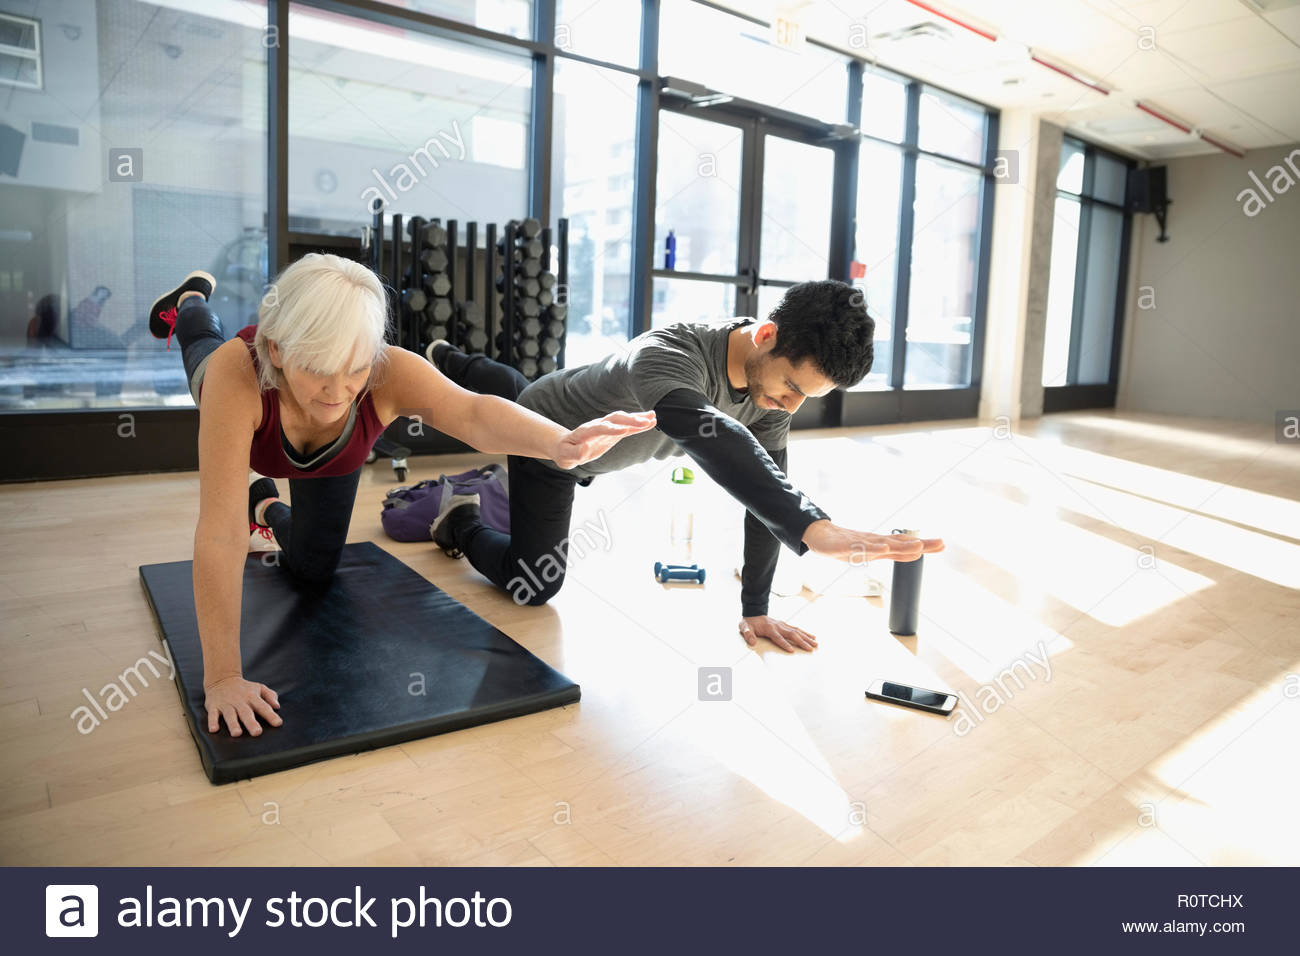 Personal trainer guiding senior woman doing balance stretch in gym studio - Stock Image